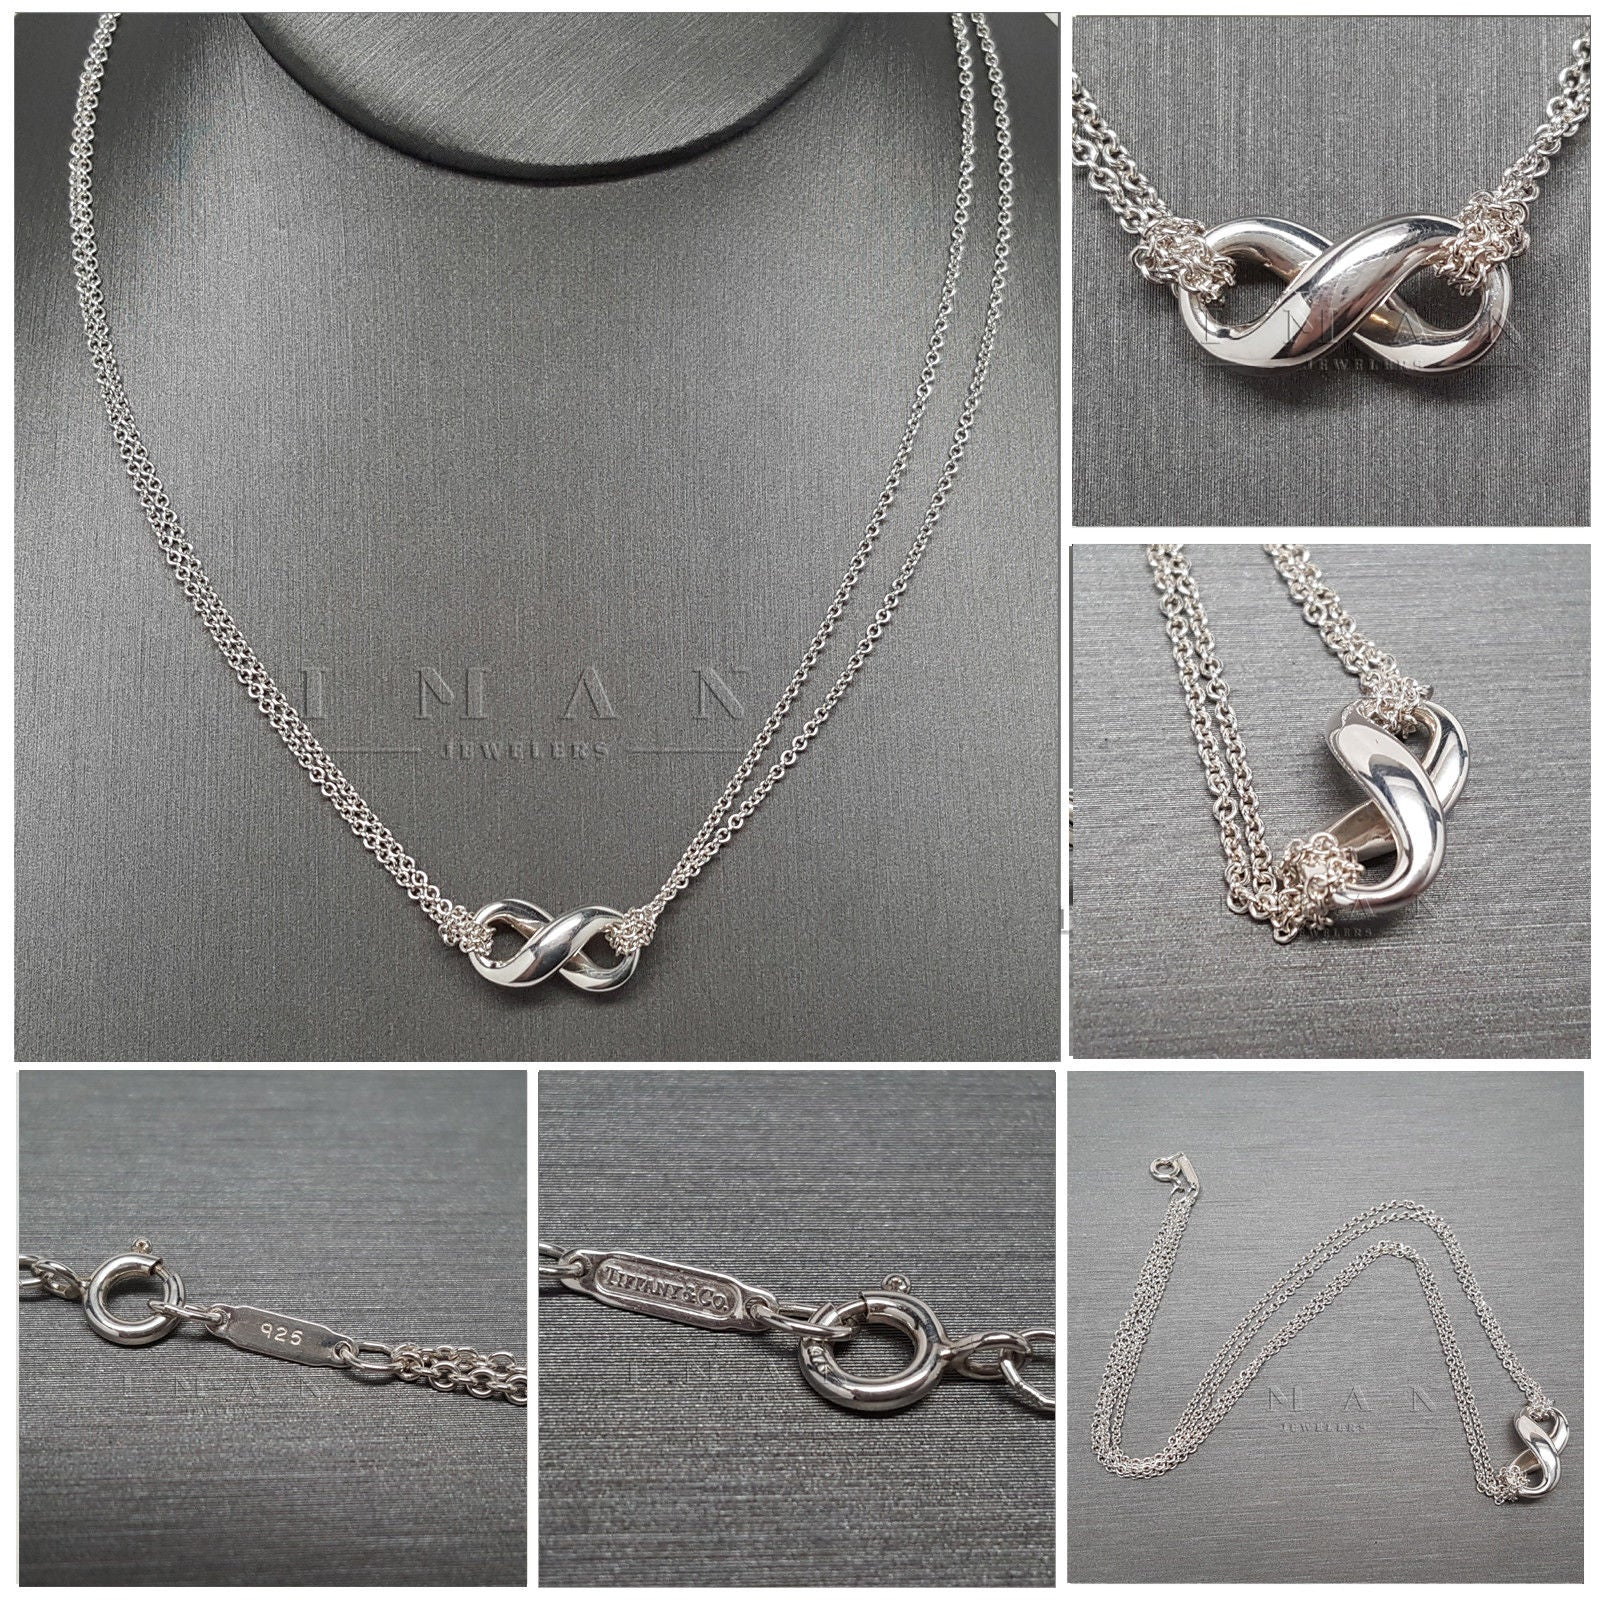 Tiffany co infinity double chain 925 sterling silver pendant tiffany co infinity double chain 925 sterling silver pendant necklace aloadofball Gallery